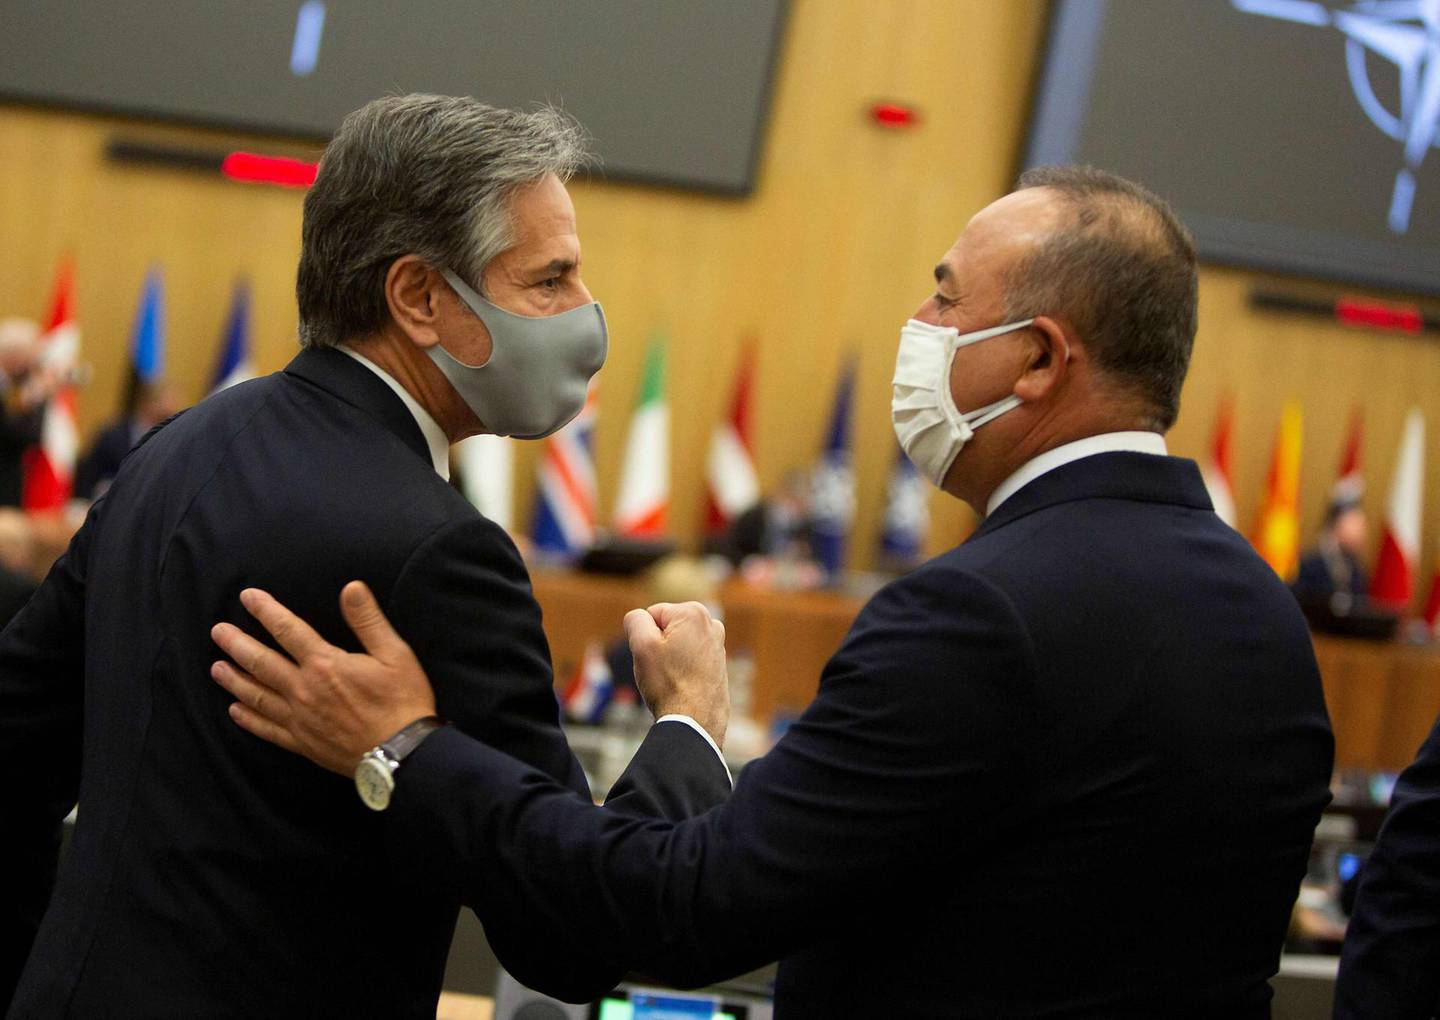 U.S. Secretary of State Antony Blinken (L) greets Turkish Foreign Minister Mevlut Cavusoglu prior to a Nato foreign ministers meeting on March 23, 2021 at the Nato headquarters in Brussels. / AFP / POOL / Virginia Mayo